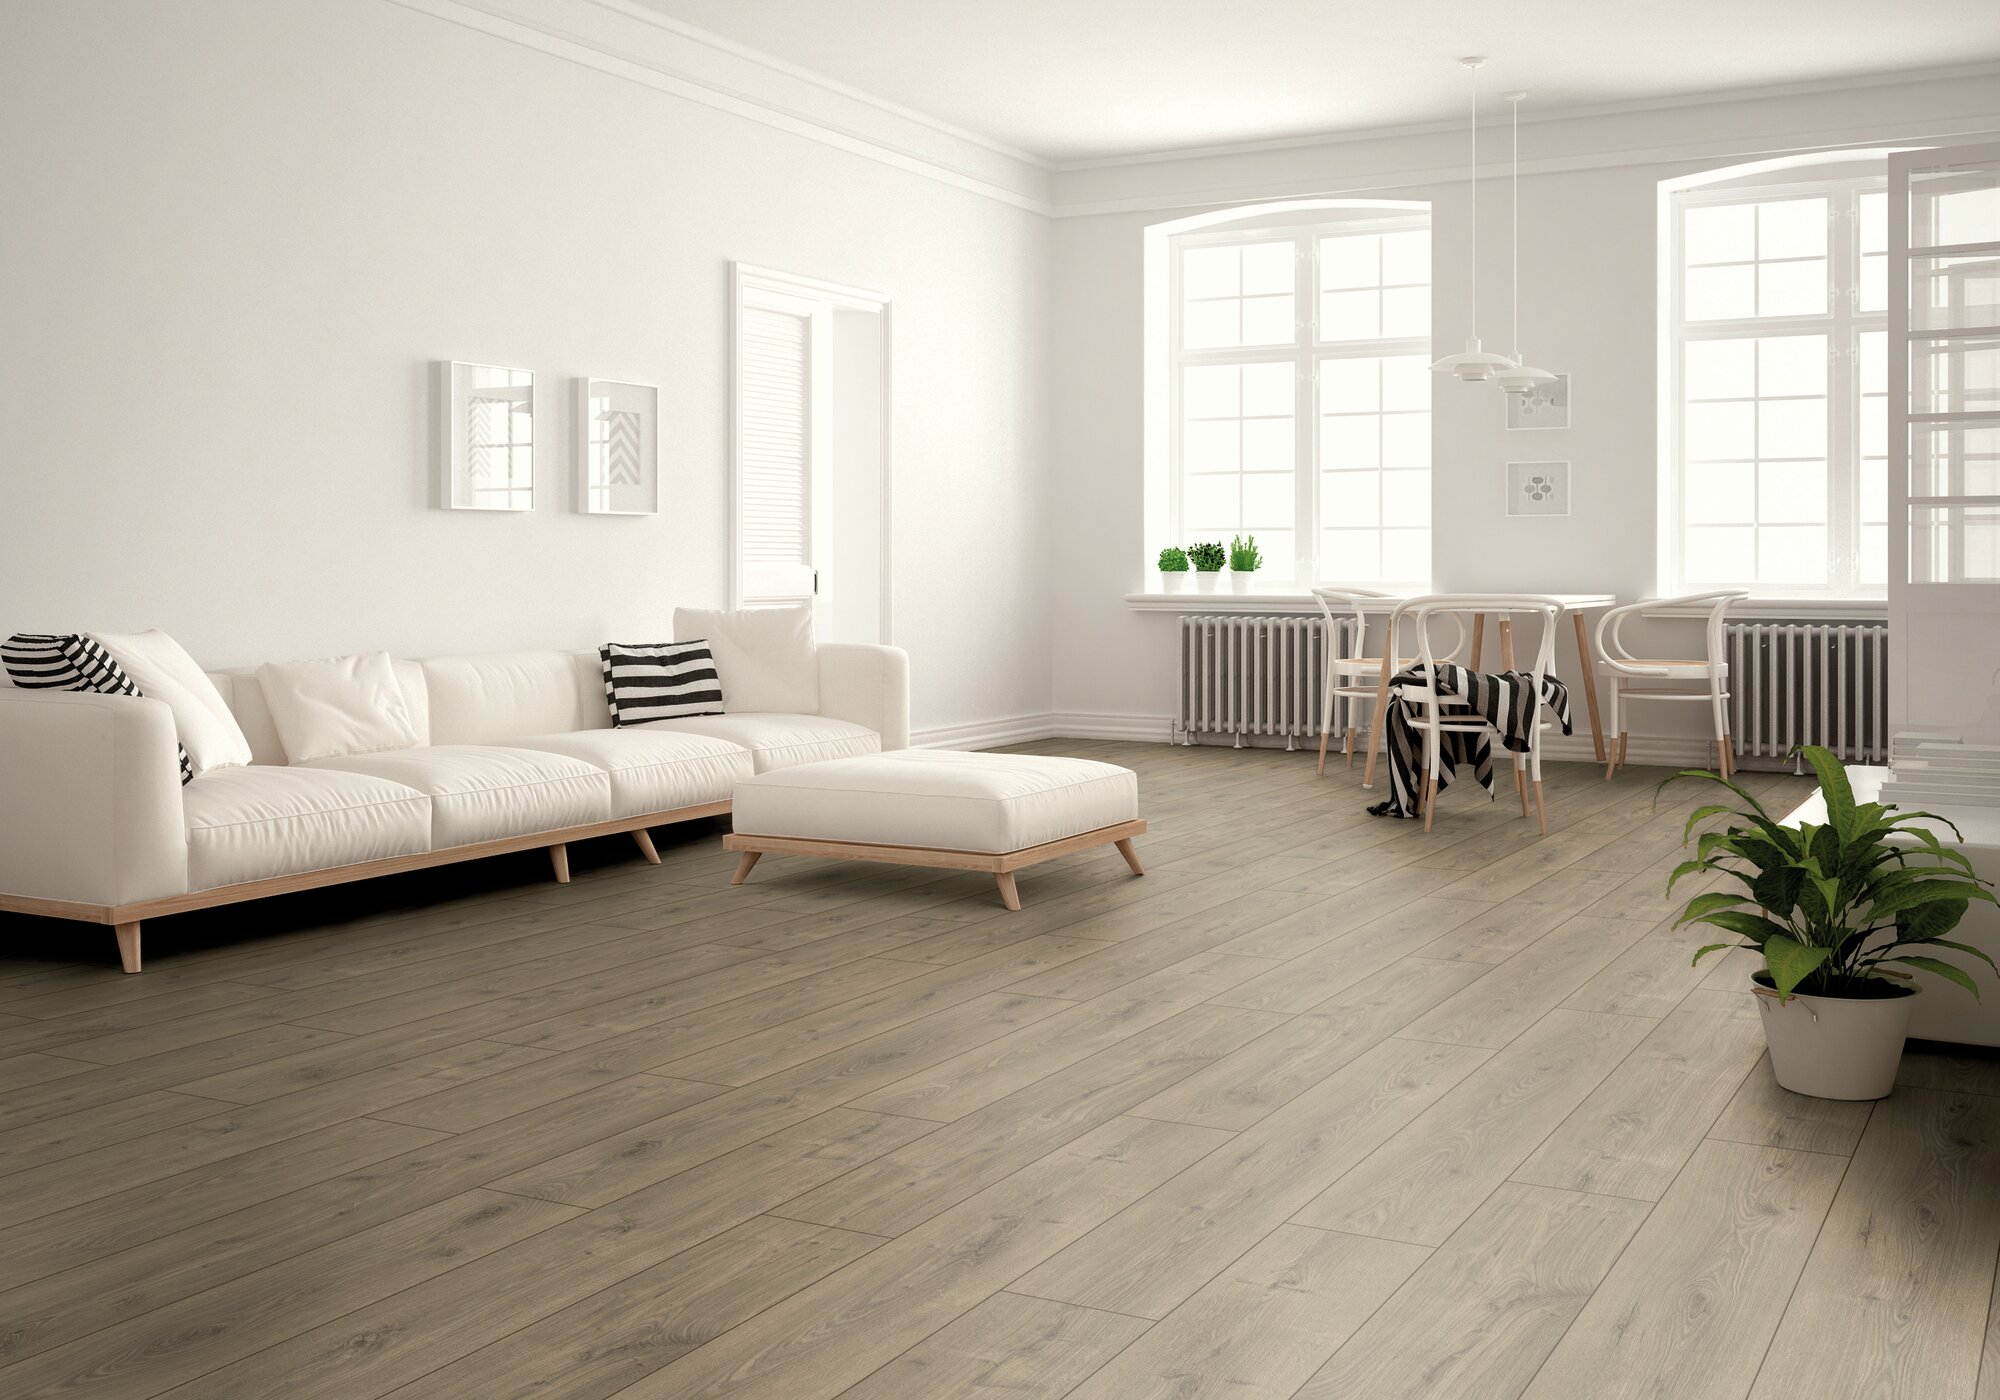 Parchet laminat rezistent la apa Swiss Liberty Natural Oak Brown D 4931 poza noua 2021